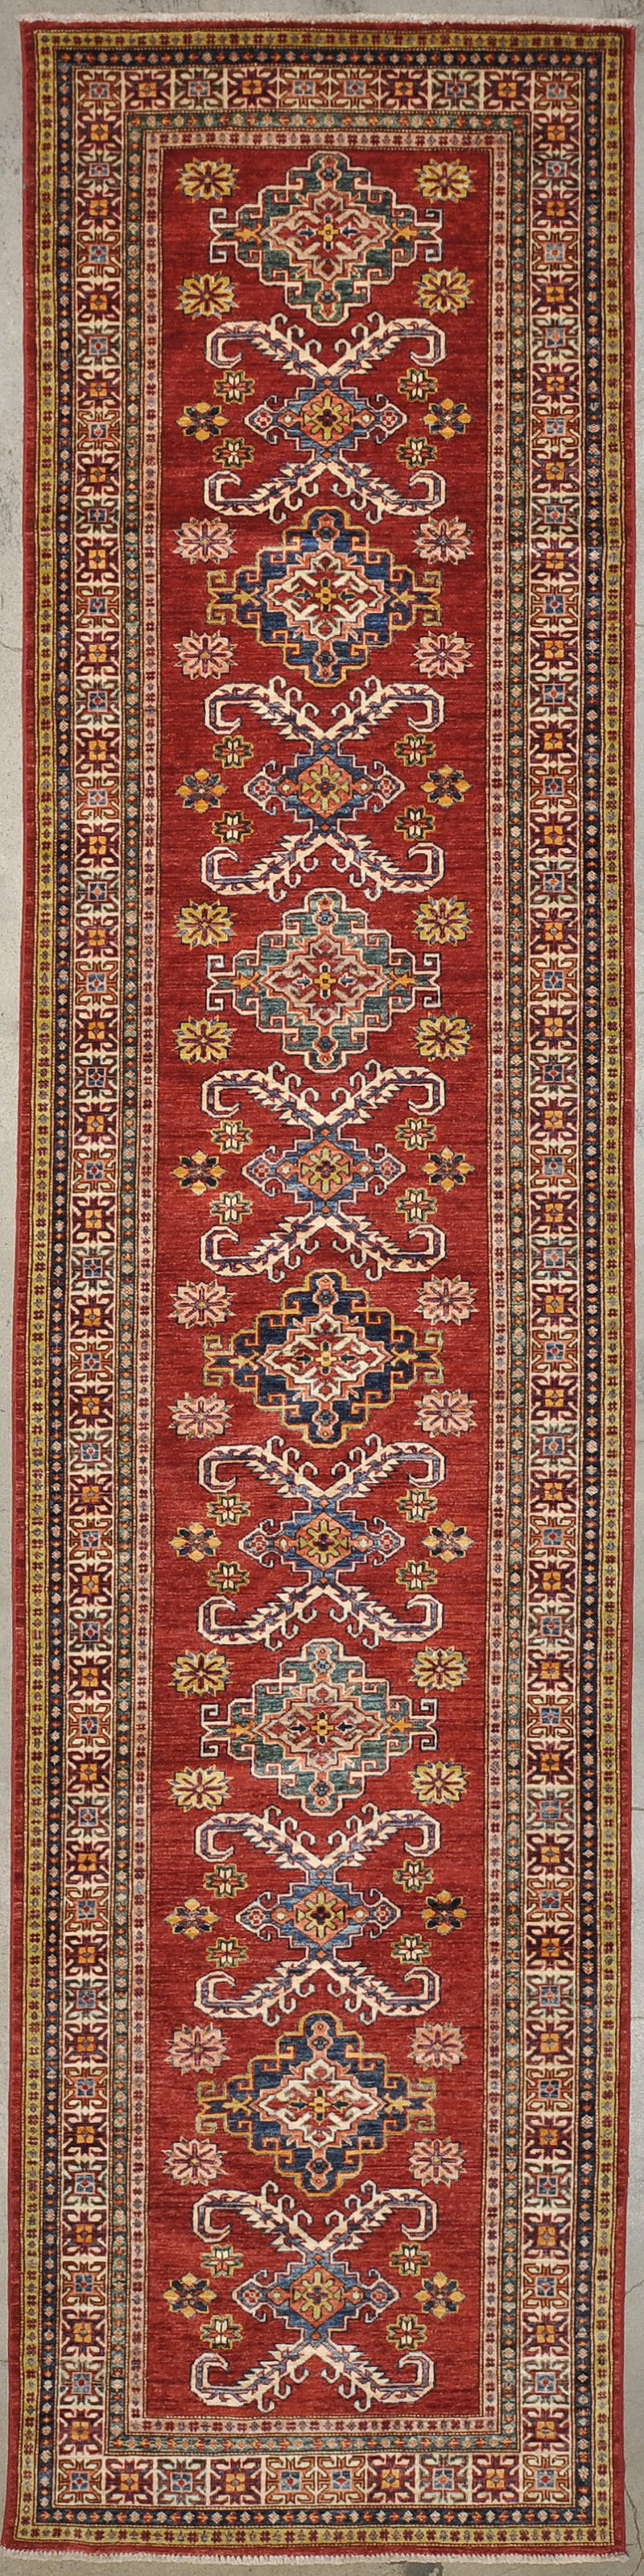 Ziegler & Co Caucasian hand knotted from natural wool and organic dyes 3'3 x 13'6